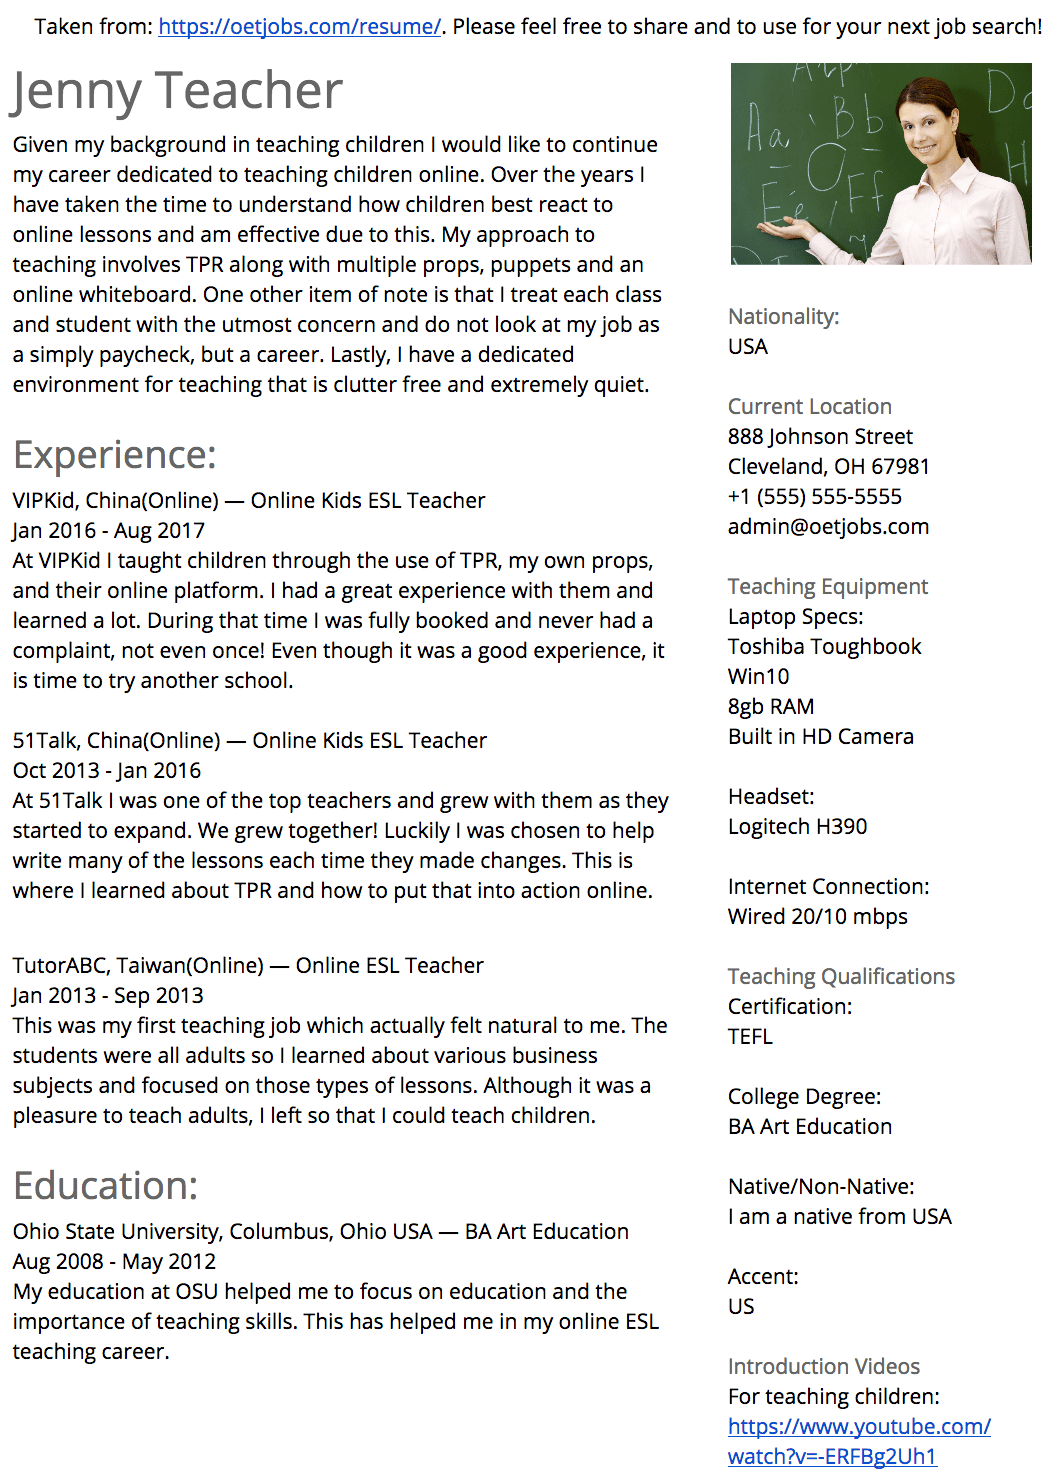 English Teacher Resume Changing Careers - Manual Guide Example 2018 •